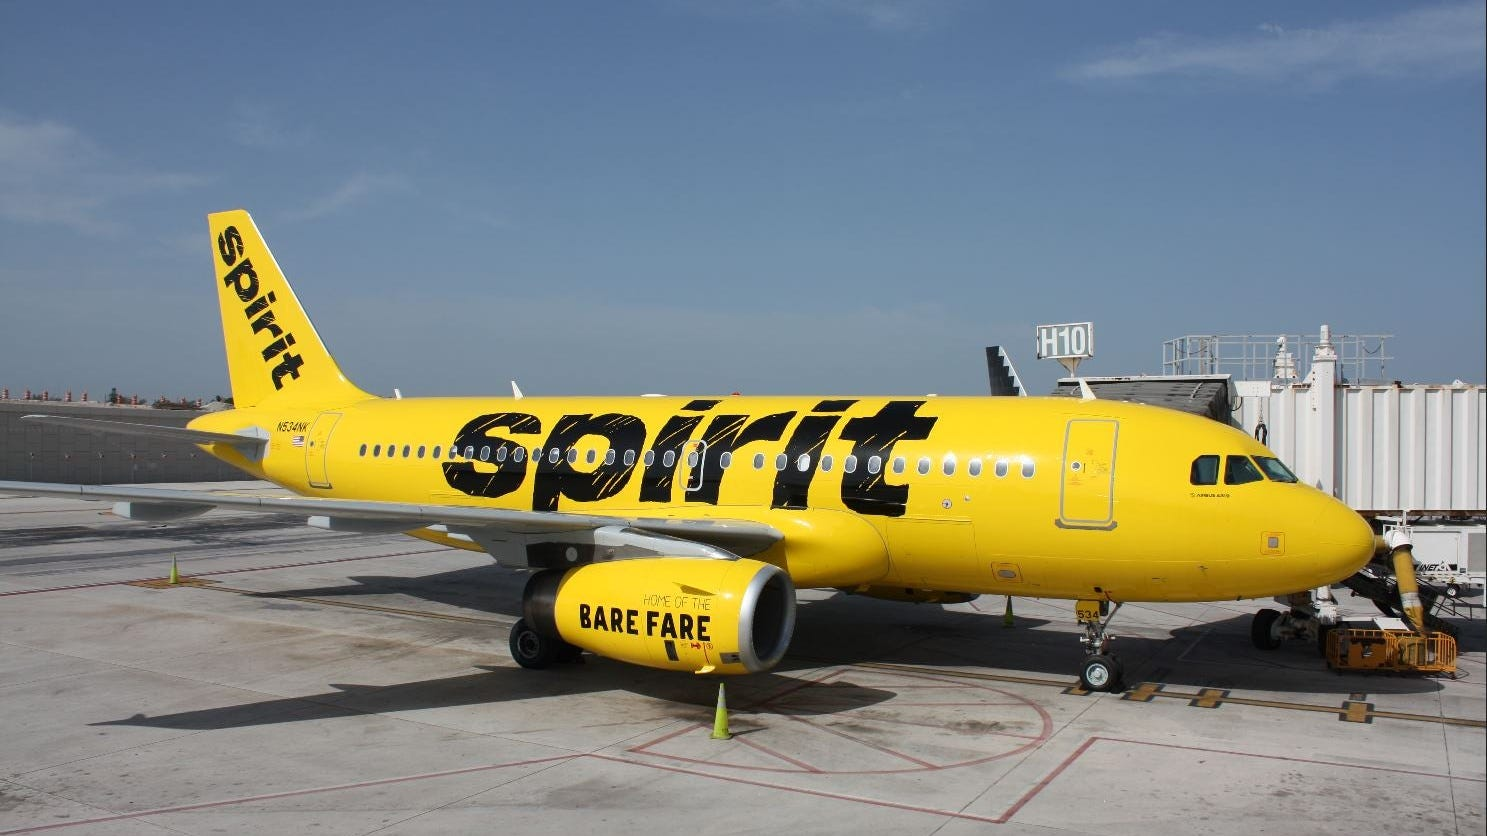 Spirit Airlines reiterates mask policy, CDC standards after passenger refuses to swap gaiter